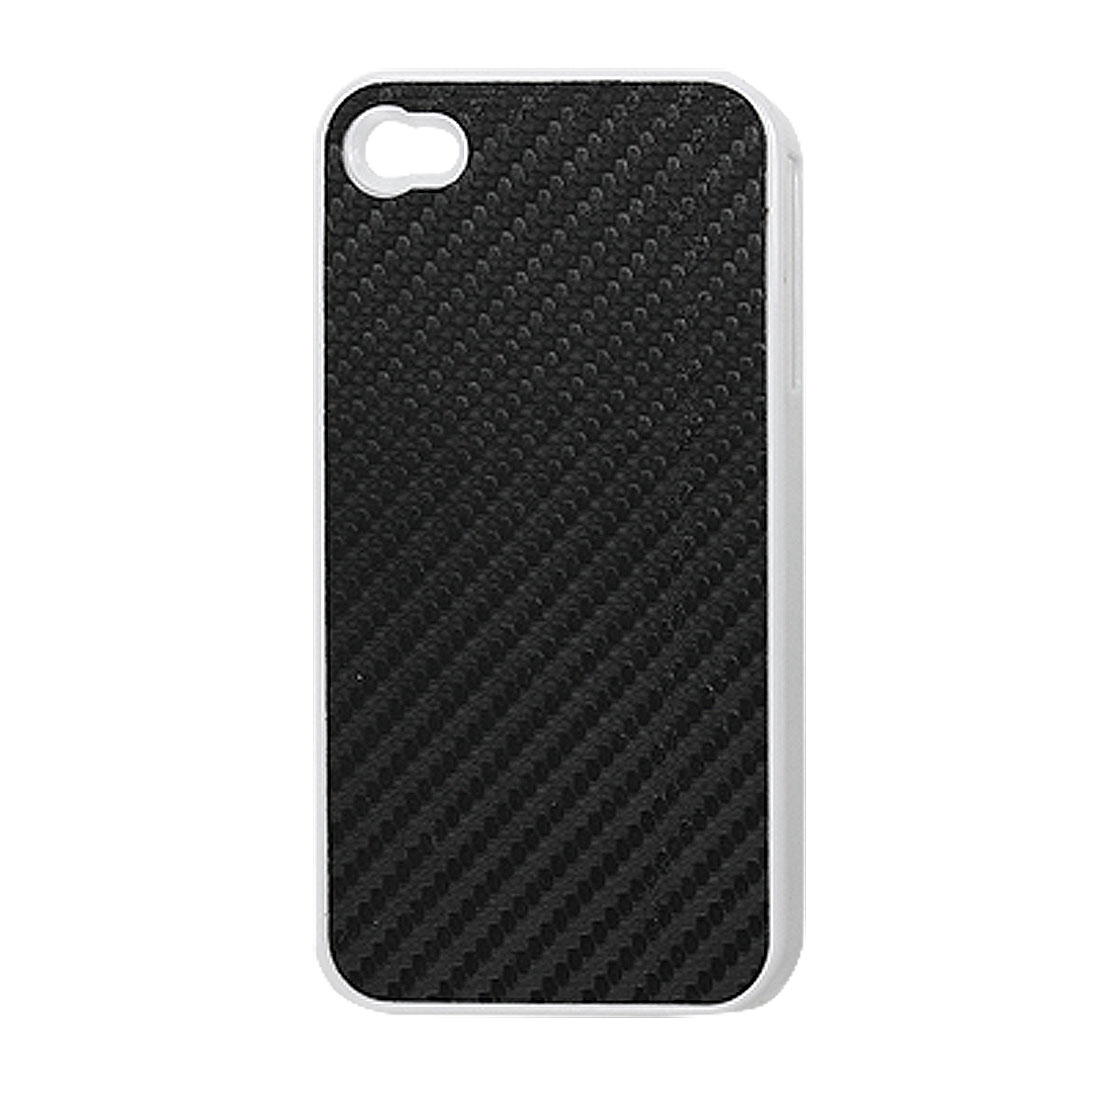 Black Woven Pattern Faux Leather Coated Plastic Back Case for iPhone 4 4G 4S